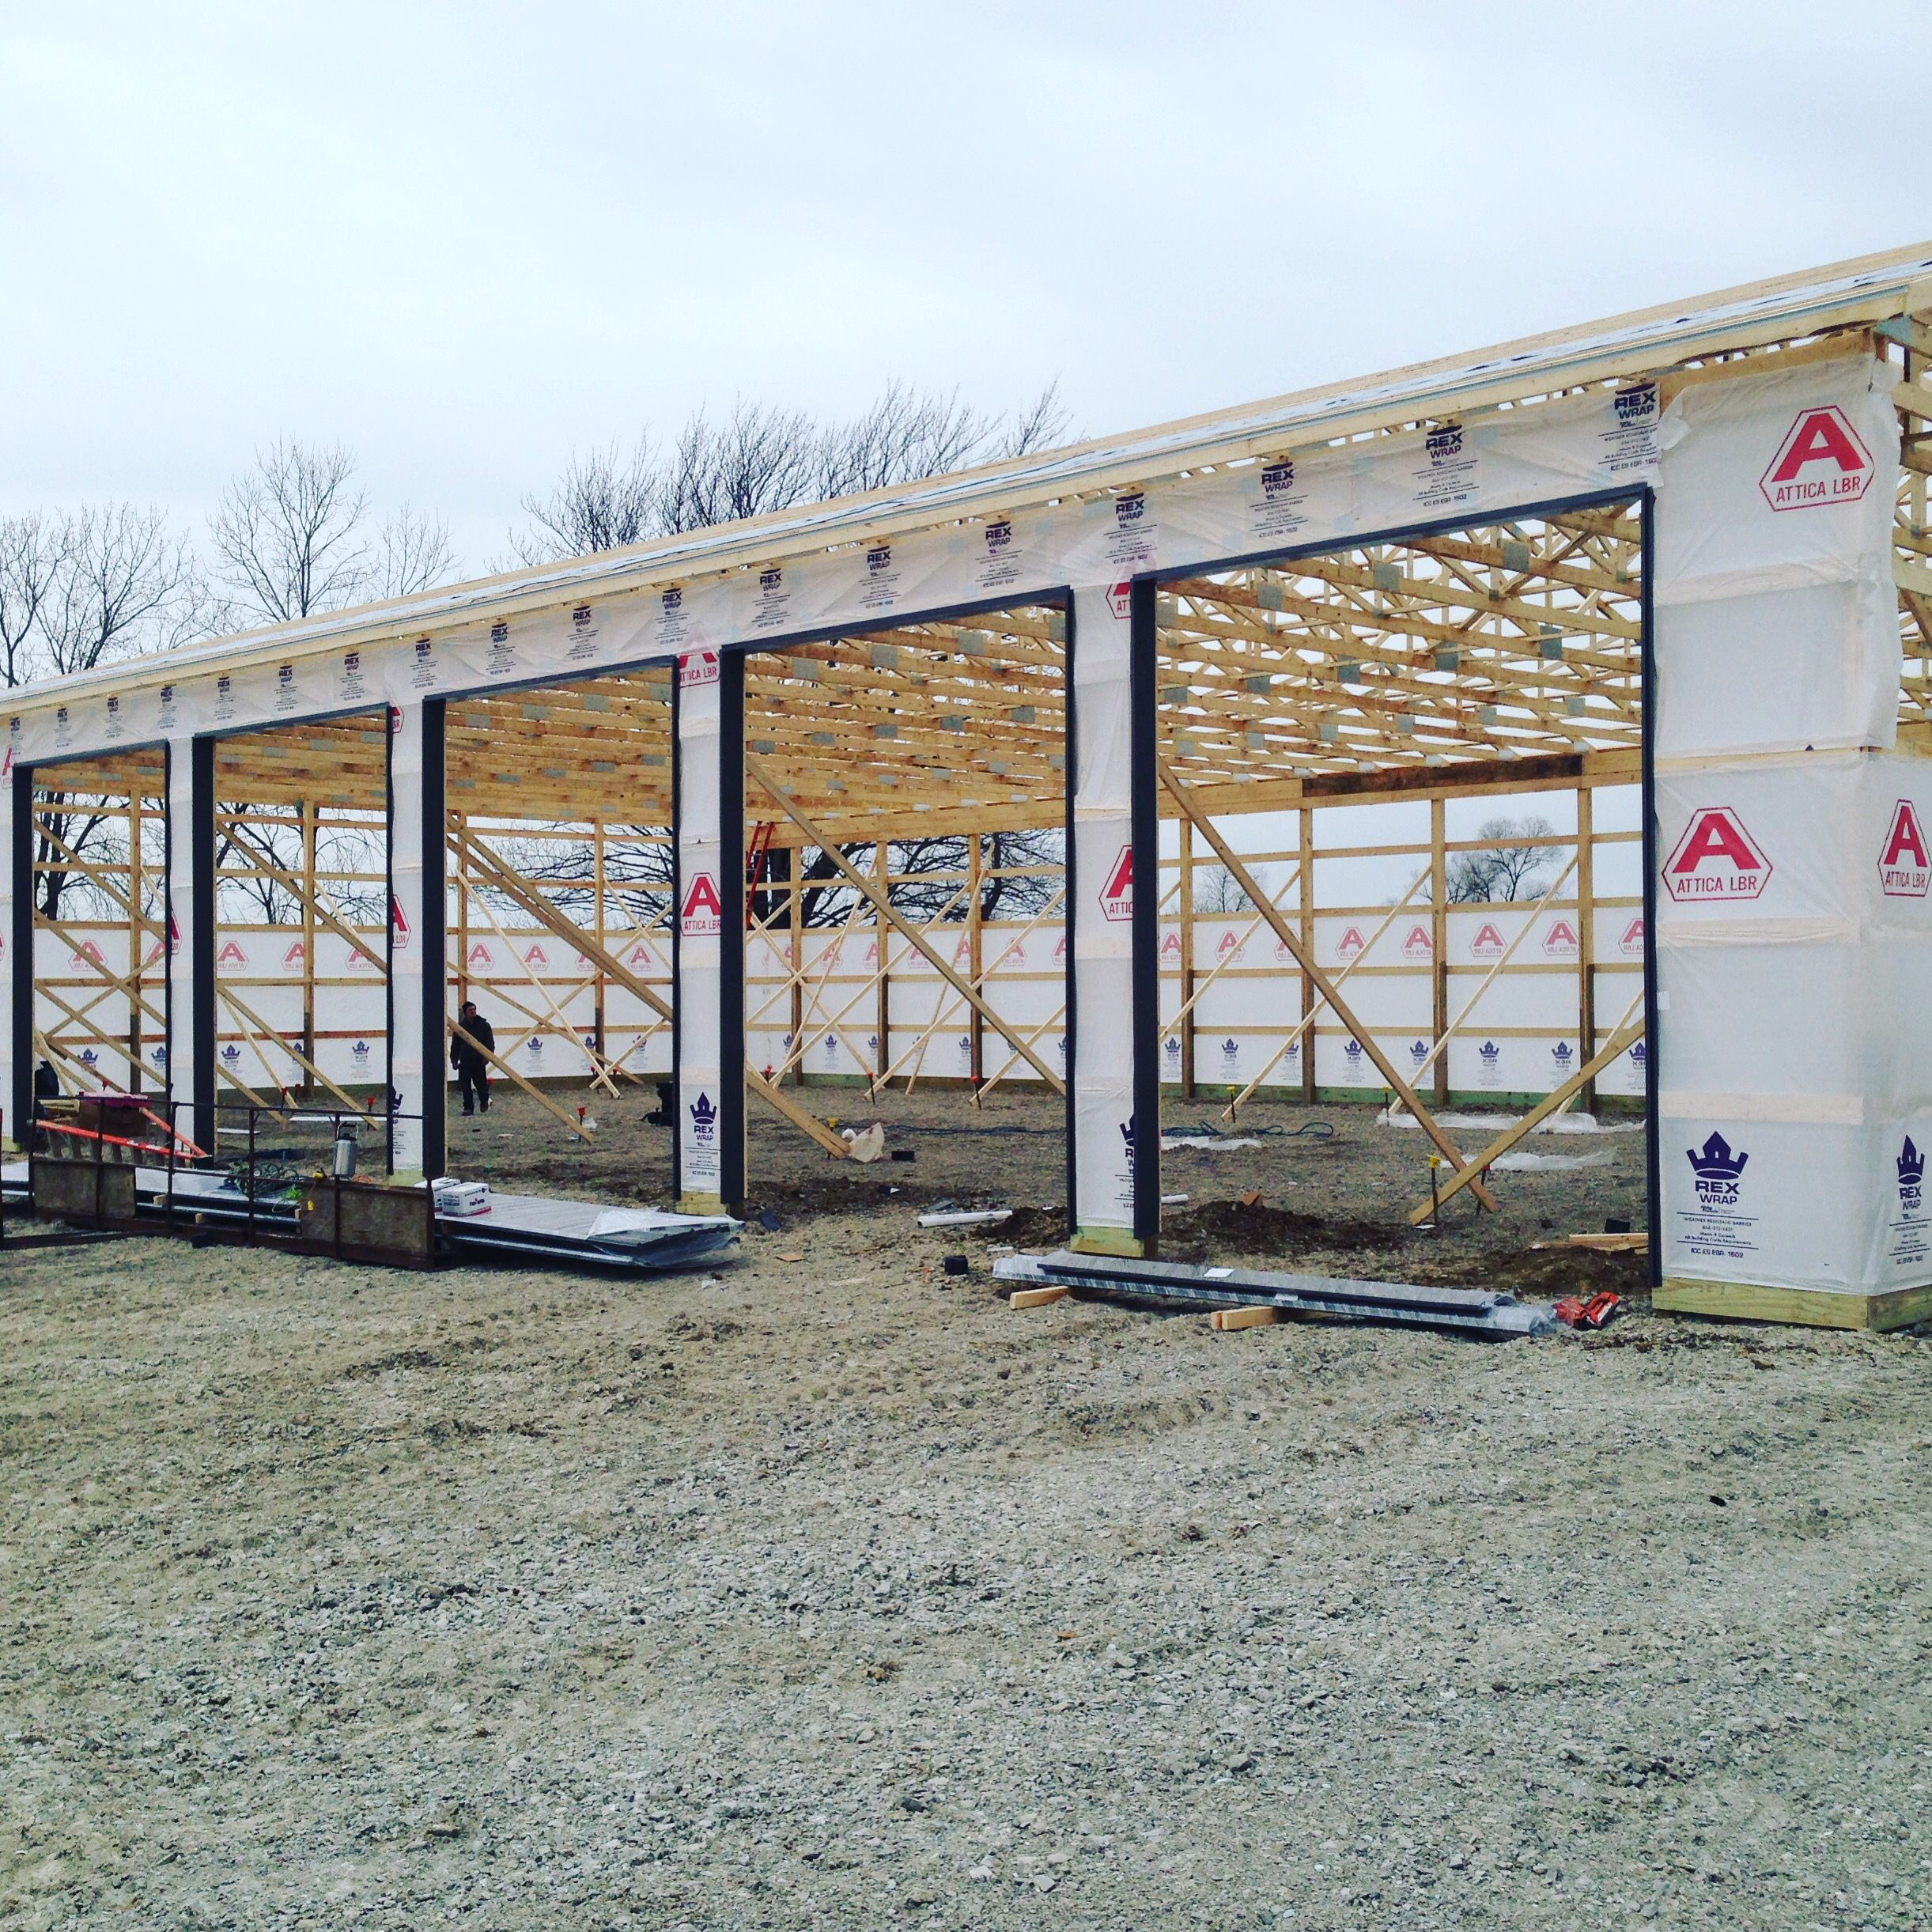 These 5 overhead door bays will provide entry and exit